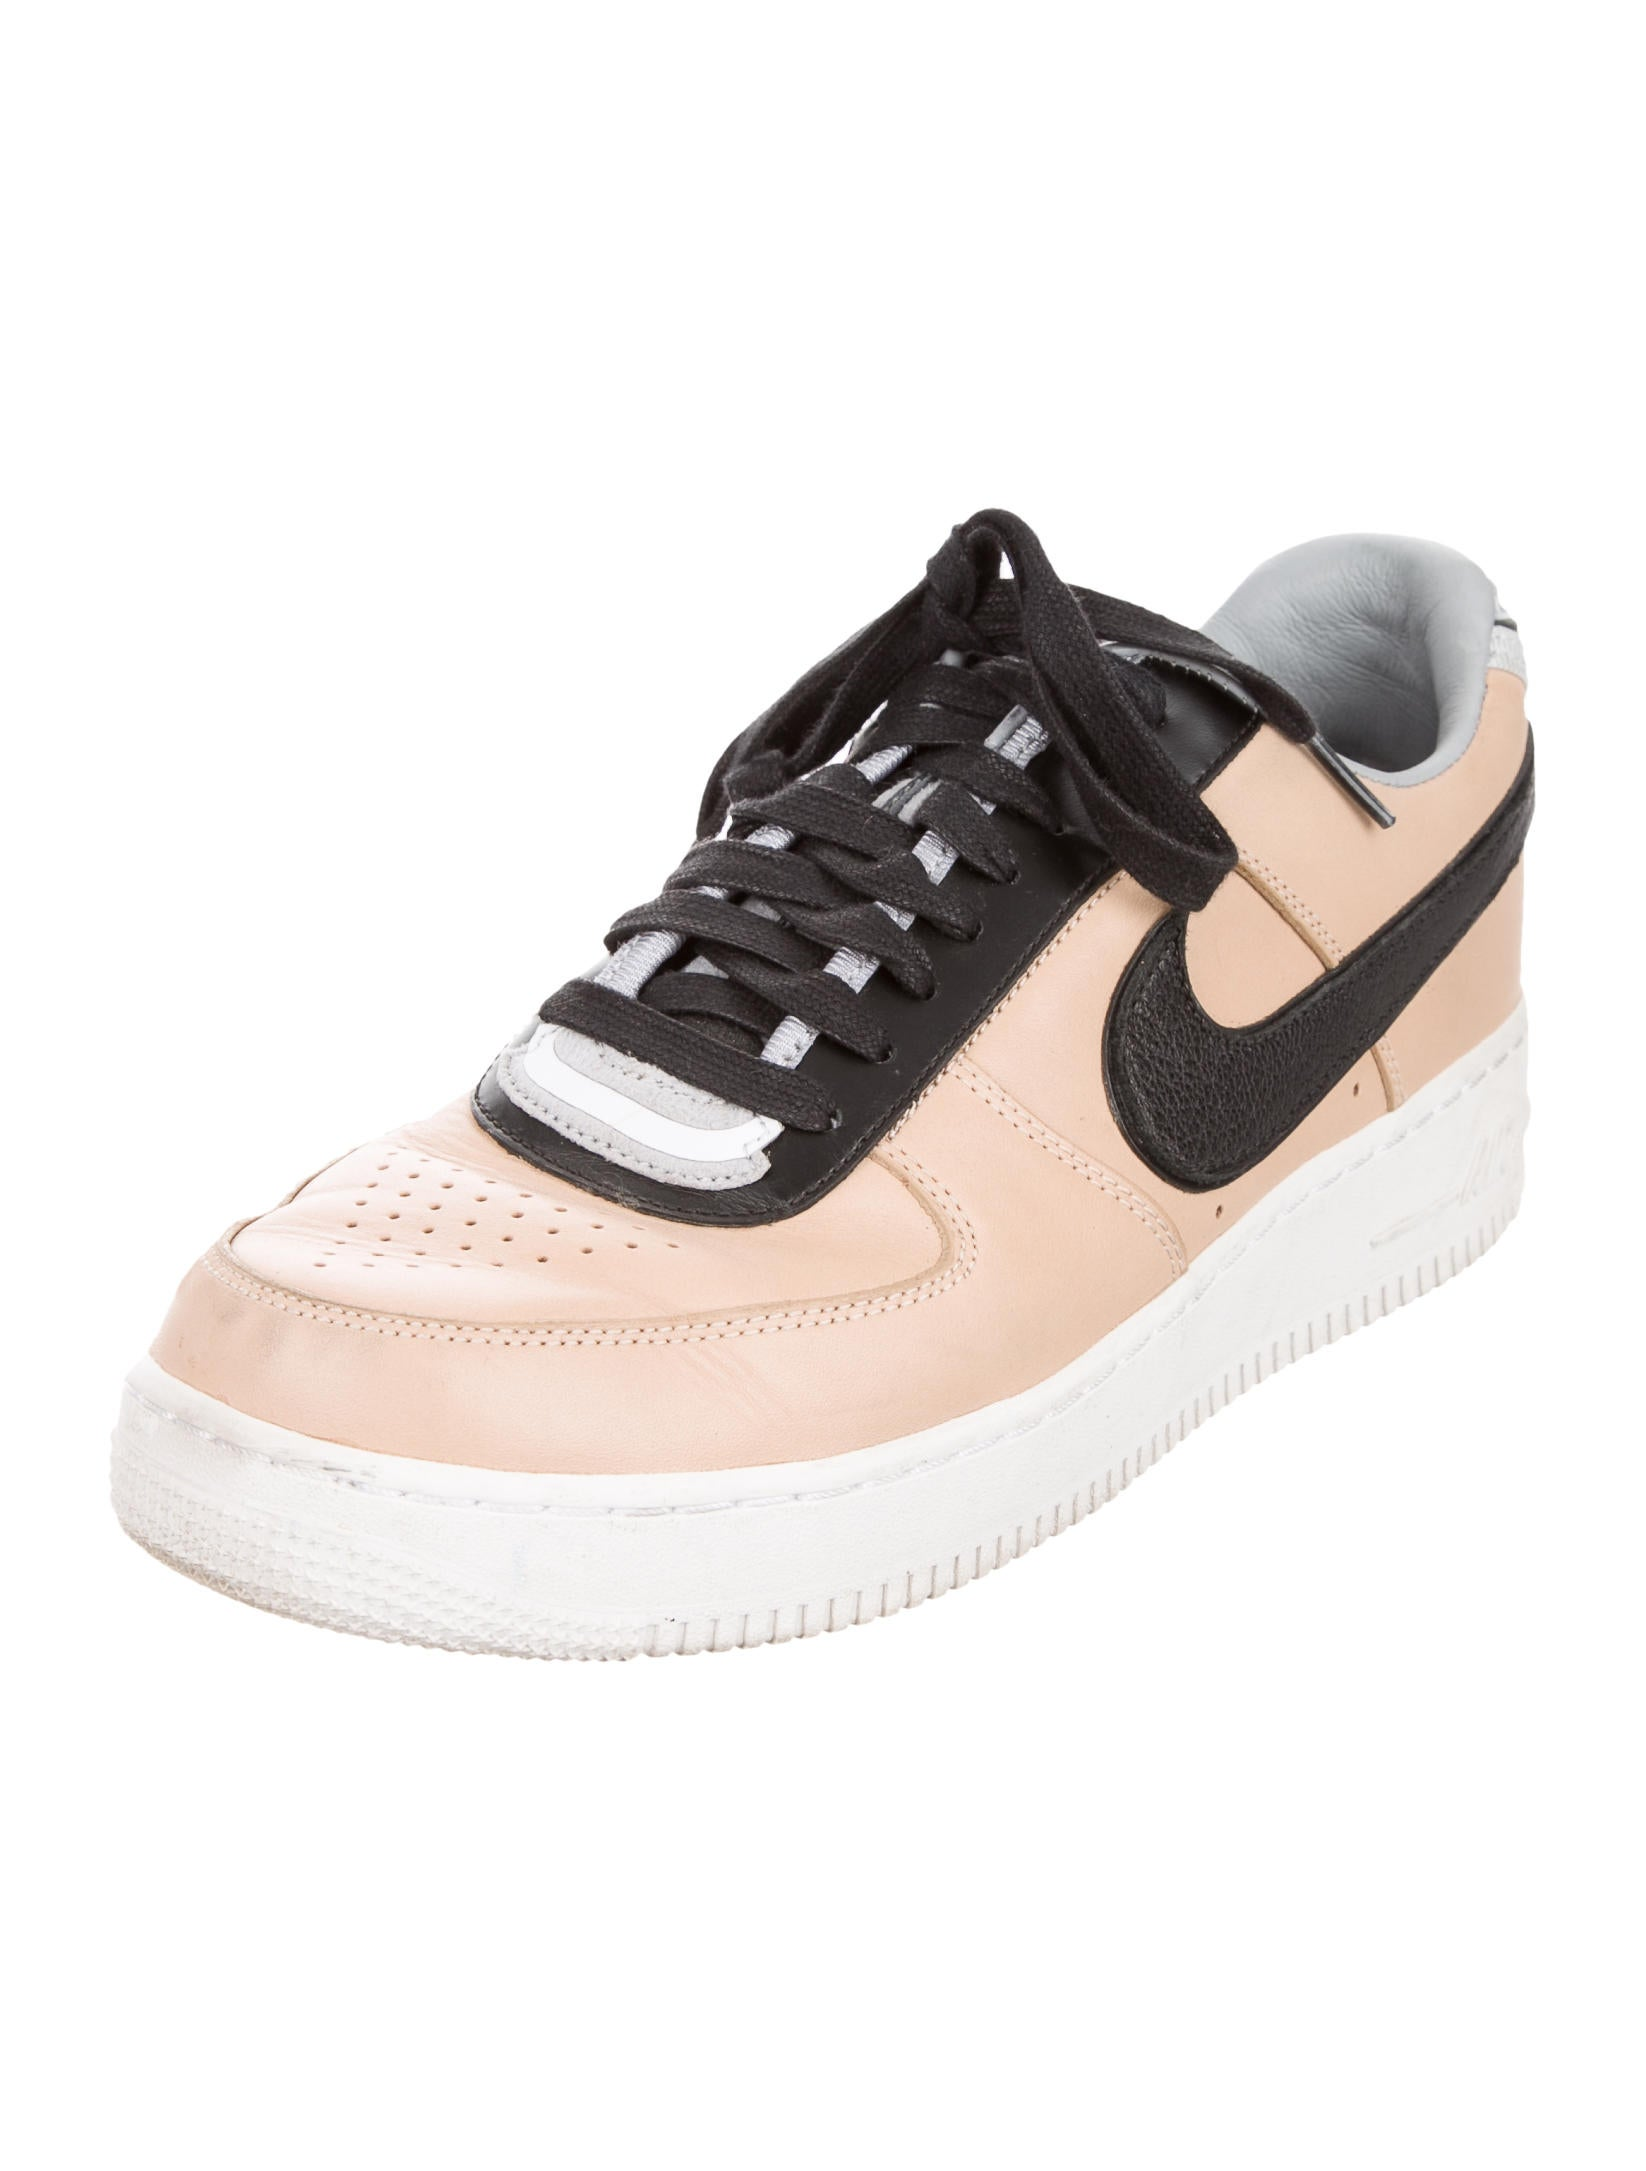 ricardo tisci x nike air force 1 low top sneakers shoes wrtni20074 the realreal. Black Bedroom Furniture Sets. Home Design Ideas